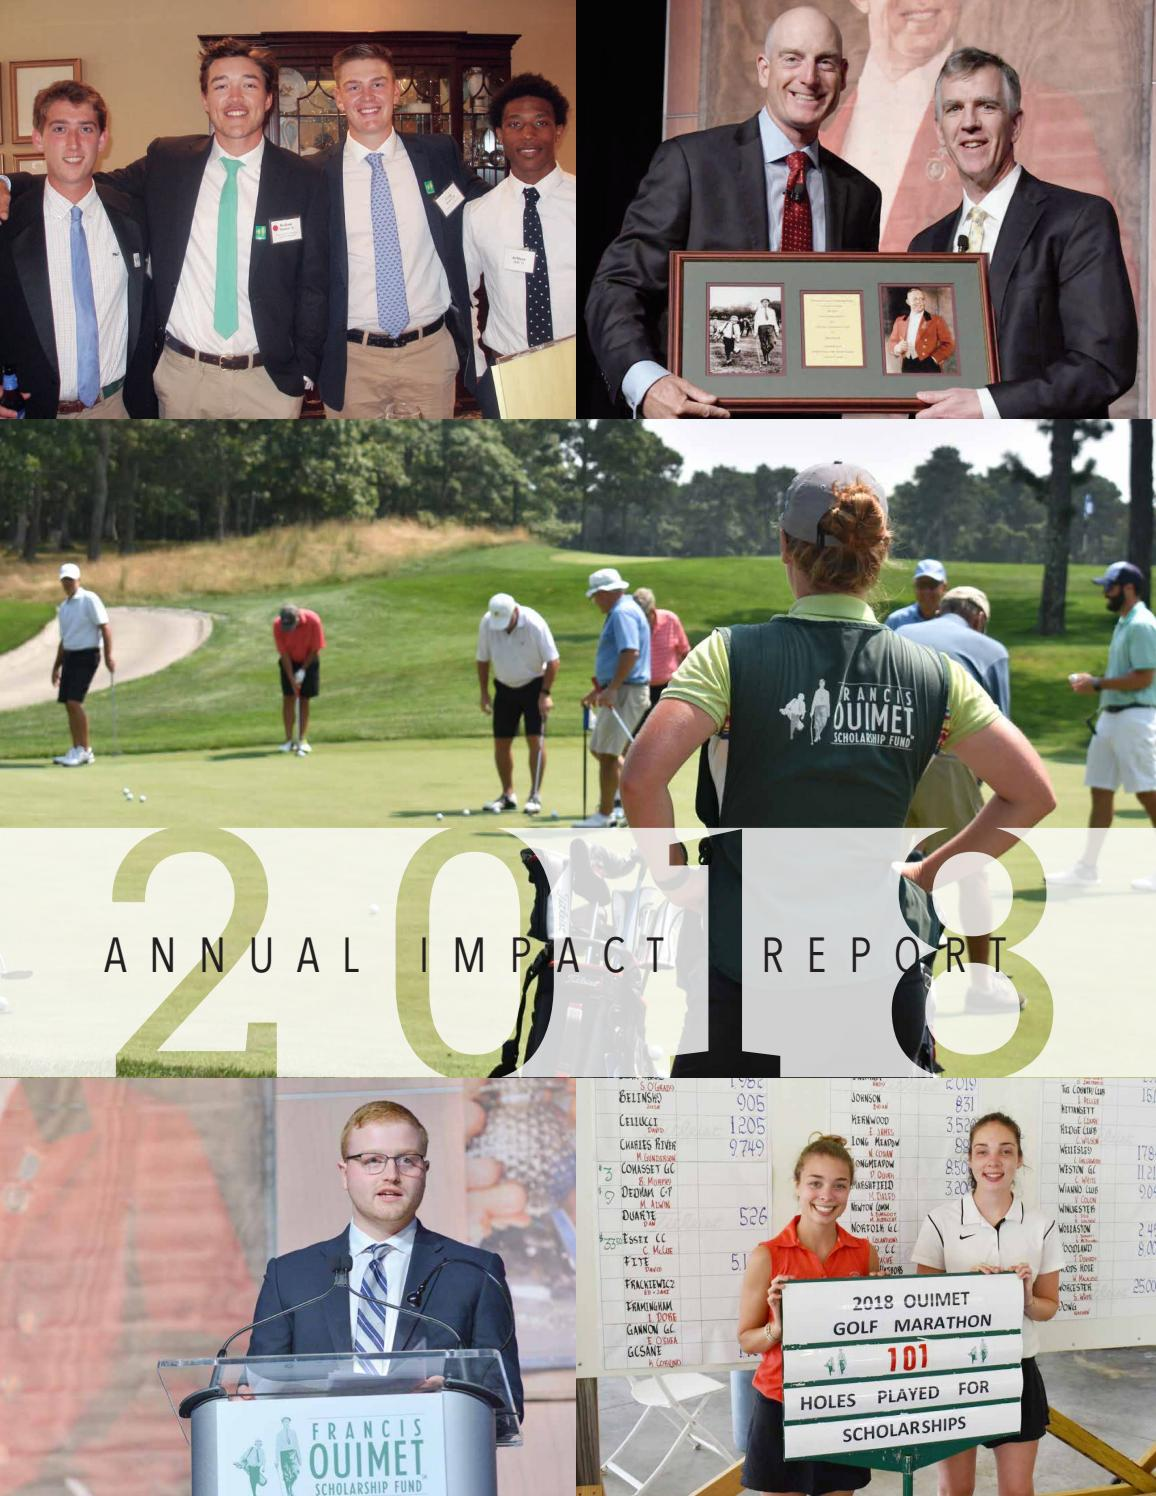 2018 Ouimet Fund Annual Impact Report By Francis Ouimet Scholarship Fund Issuu Jen a'hearn is on facebook. 2018 ouimet fund annual impact report